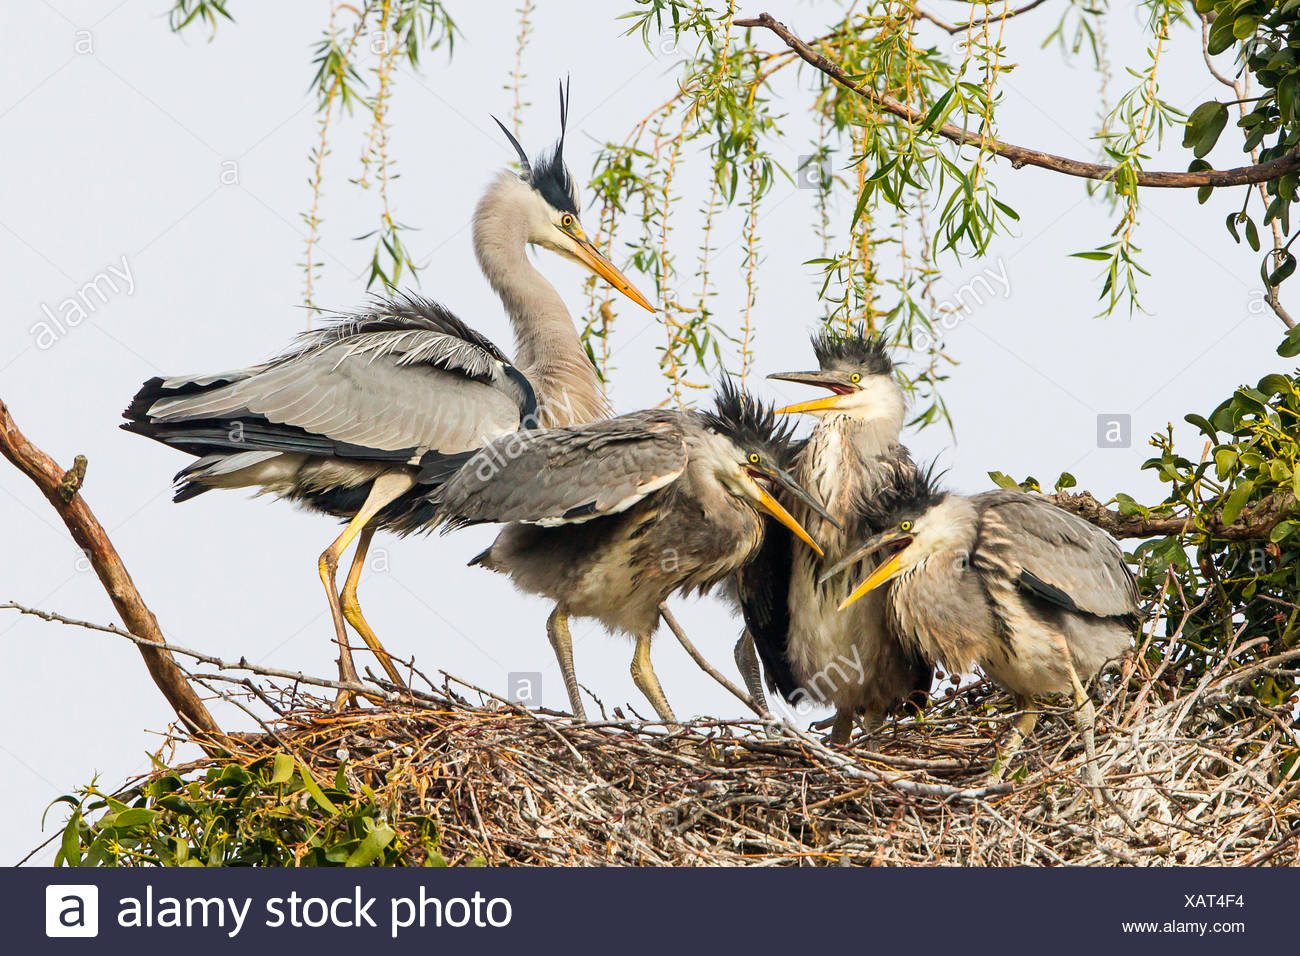 Grey Heron (Ardea cinerea), adult with young birds in a nest, Lower Saxony, Germany - Stock Image